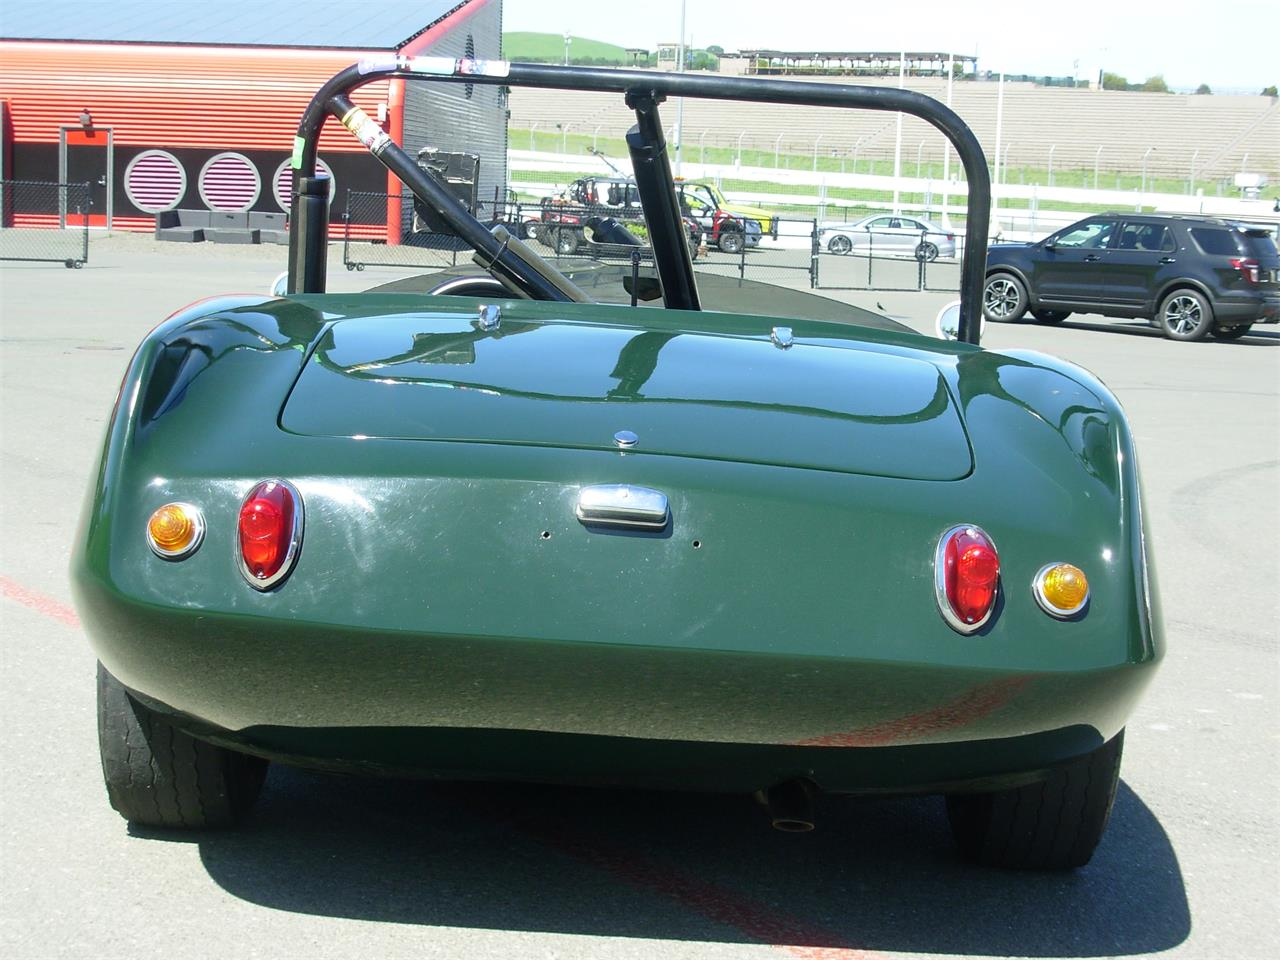 1963 Elva Courier Mark III for sale in Berkeley, CA – photo 3